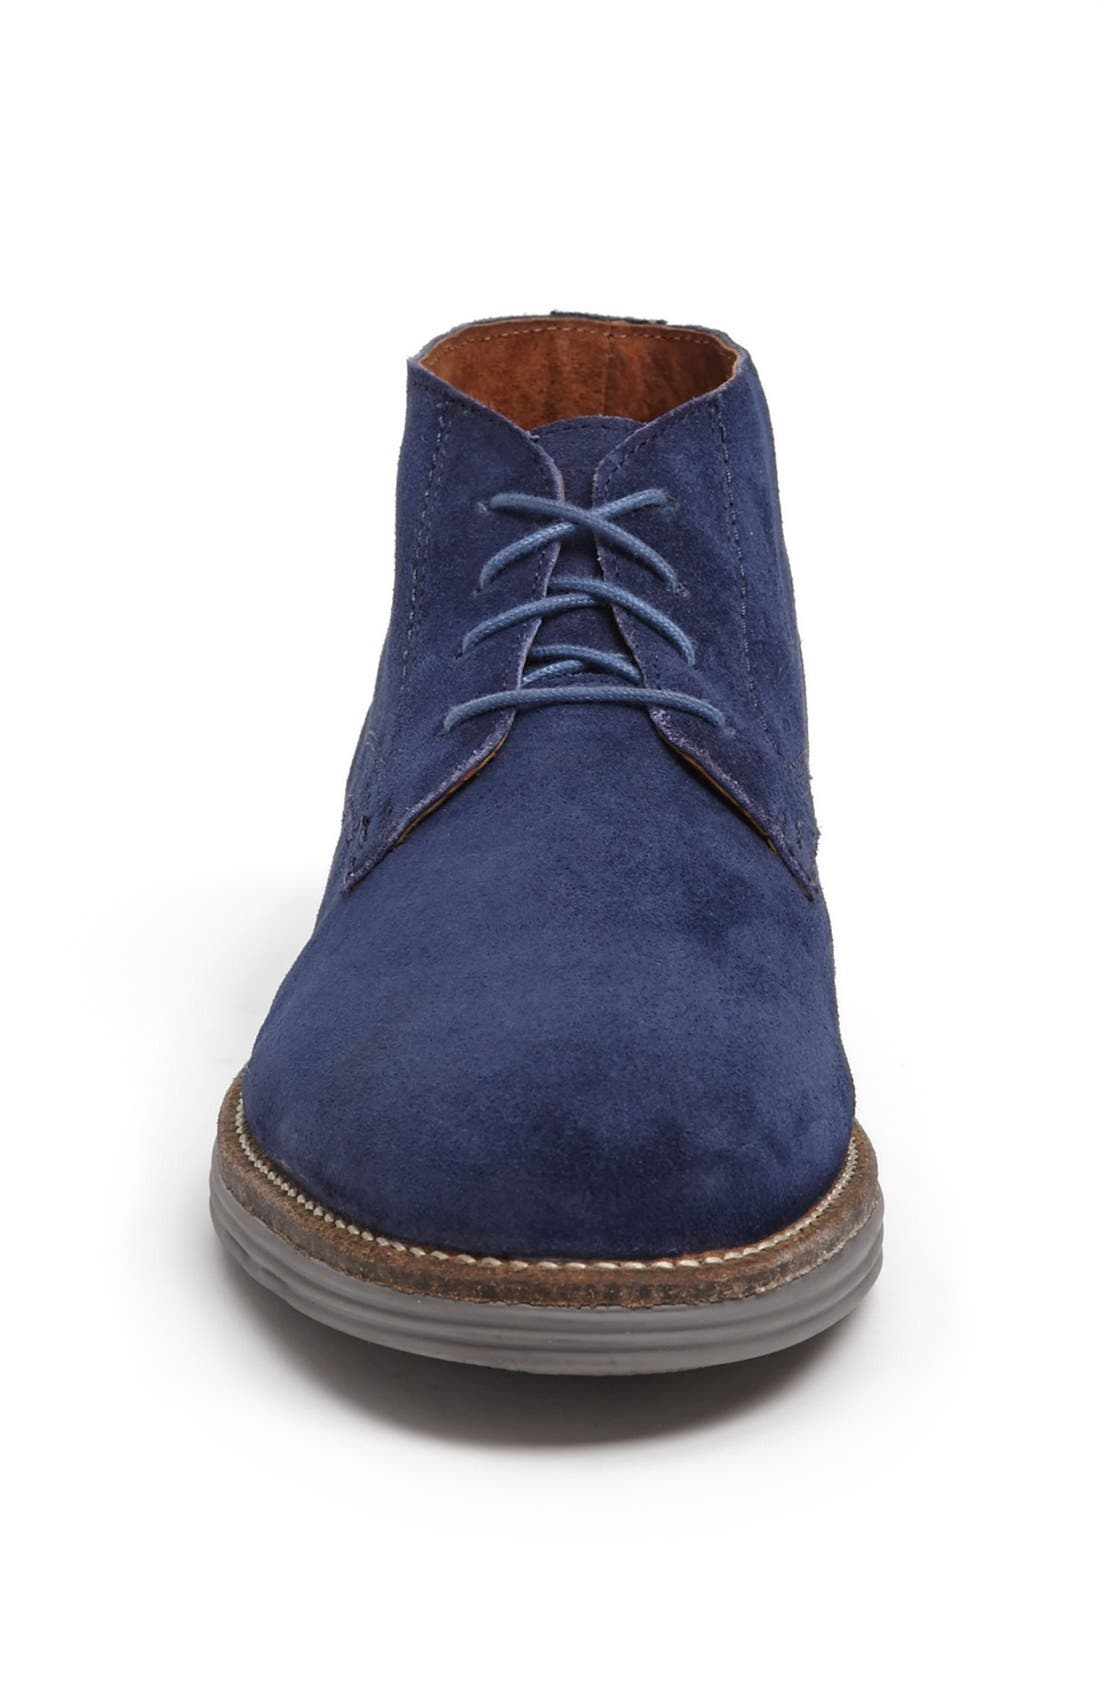 Alternate Image 3  - Ben Sherman 'Zen' Chukka Boot